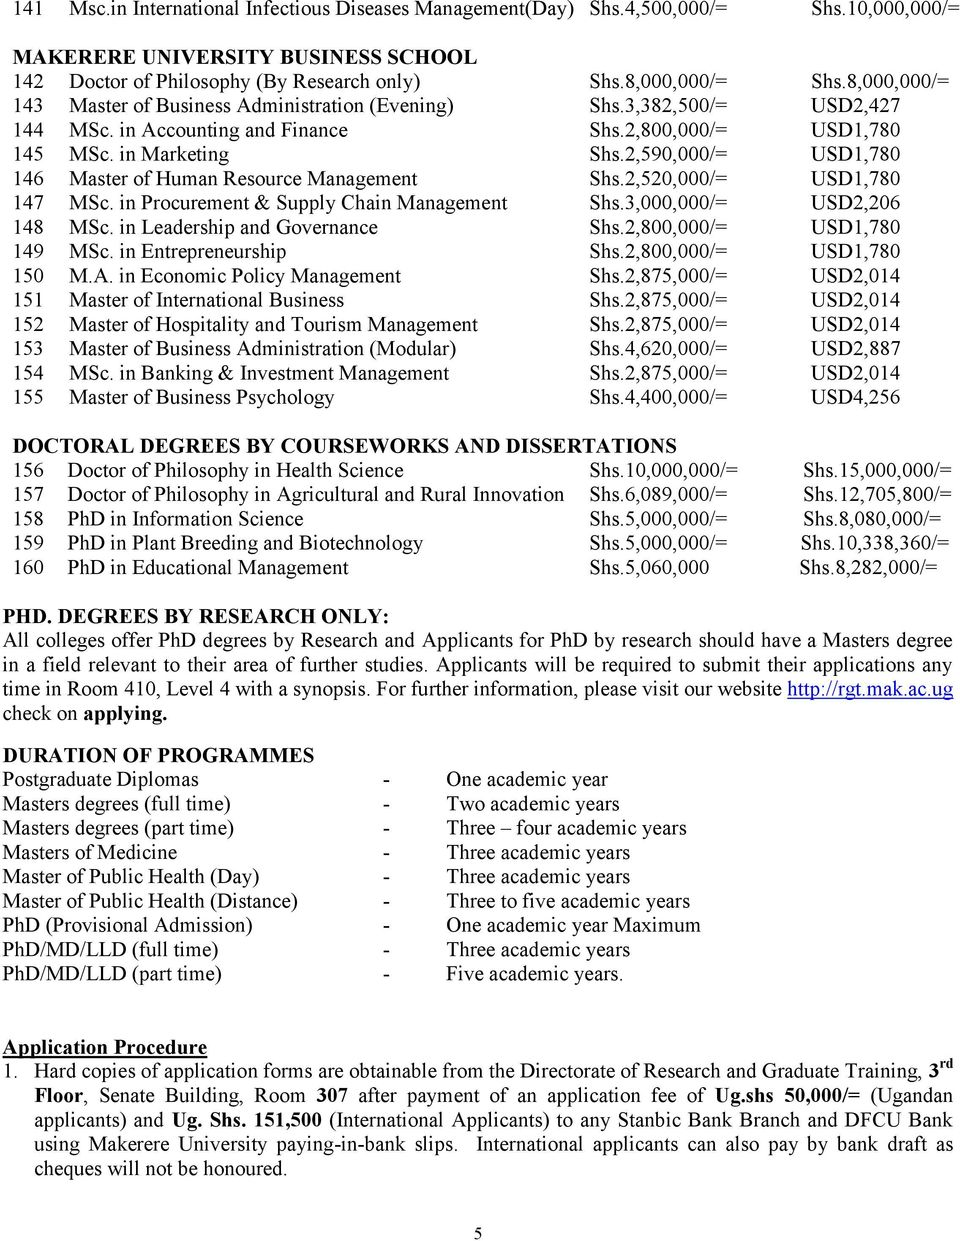 2,590,000/= USD1,780 146 Master of Human Resource Management Shs.2,520,000/= USD1,780 147 MSc. in Procurement & Supply Chain Management Shs.3,000,000/= USD2,206 148 MSc.